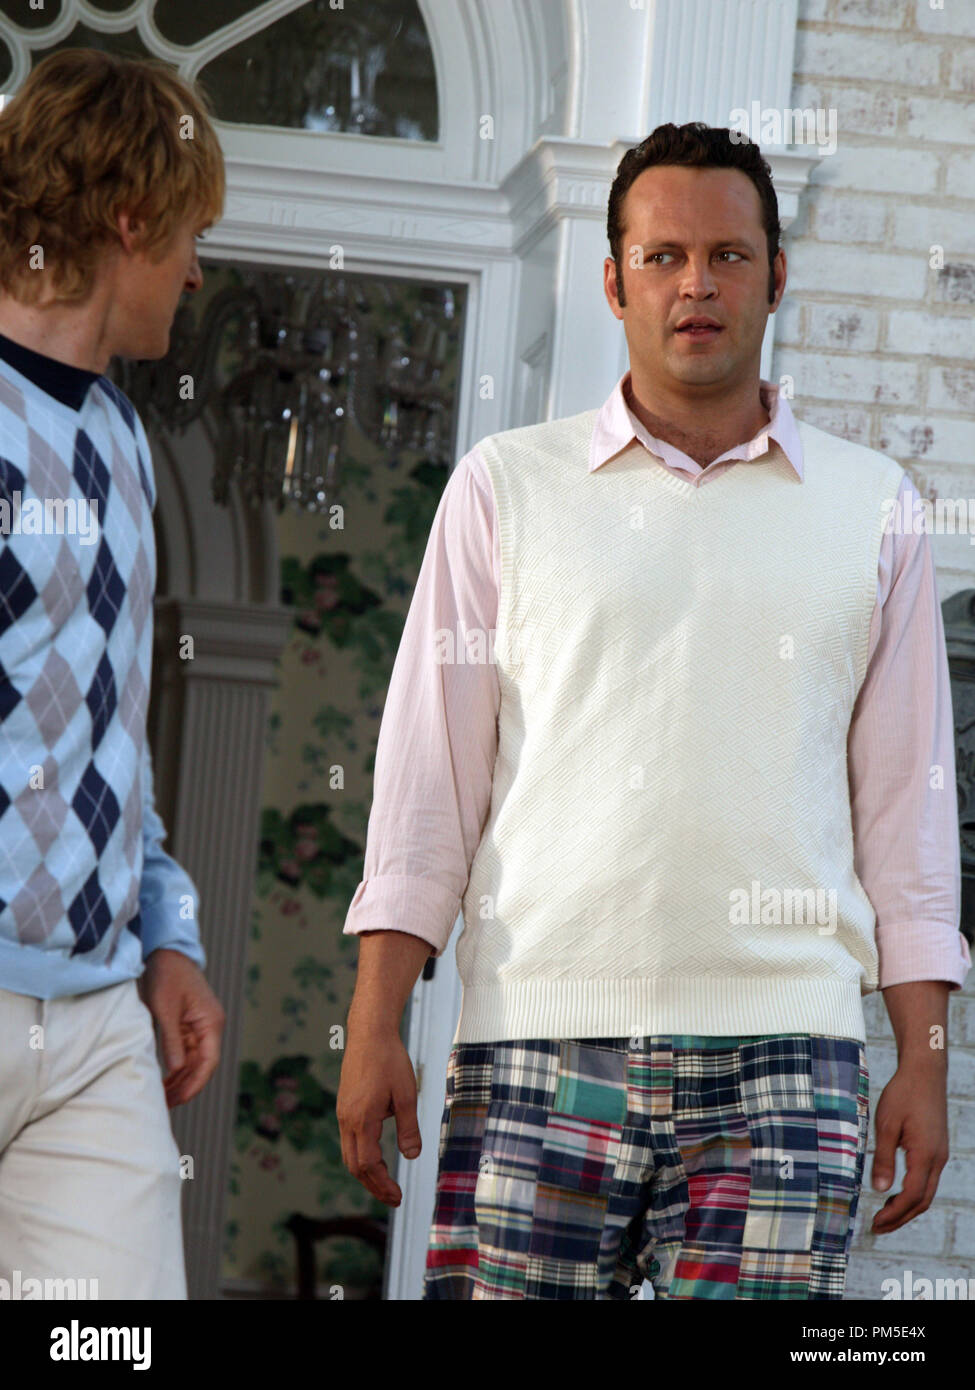 Film Still / Publicity Stills from 'Wedding Crashers'  Owen Wilson, Vince Vaughn  © 2005 New Line Cinema  Photo Credit: Richard Cartwright  File Reference # 30736741THA  For Editorial Use Only -  All Rights Reserved - Stock Image